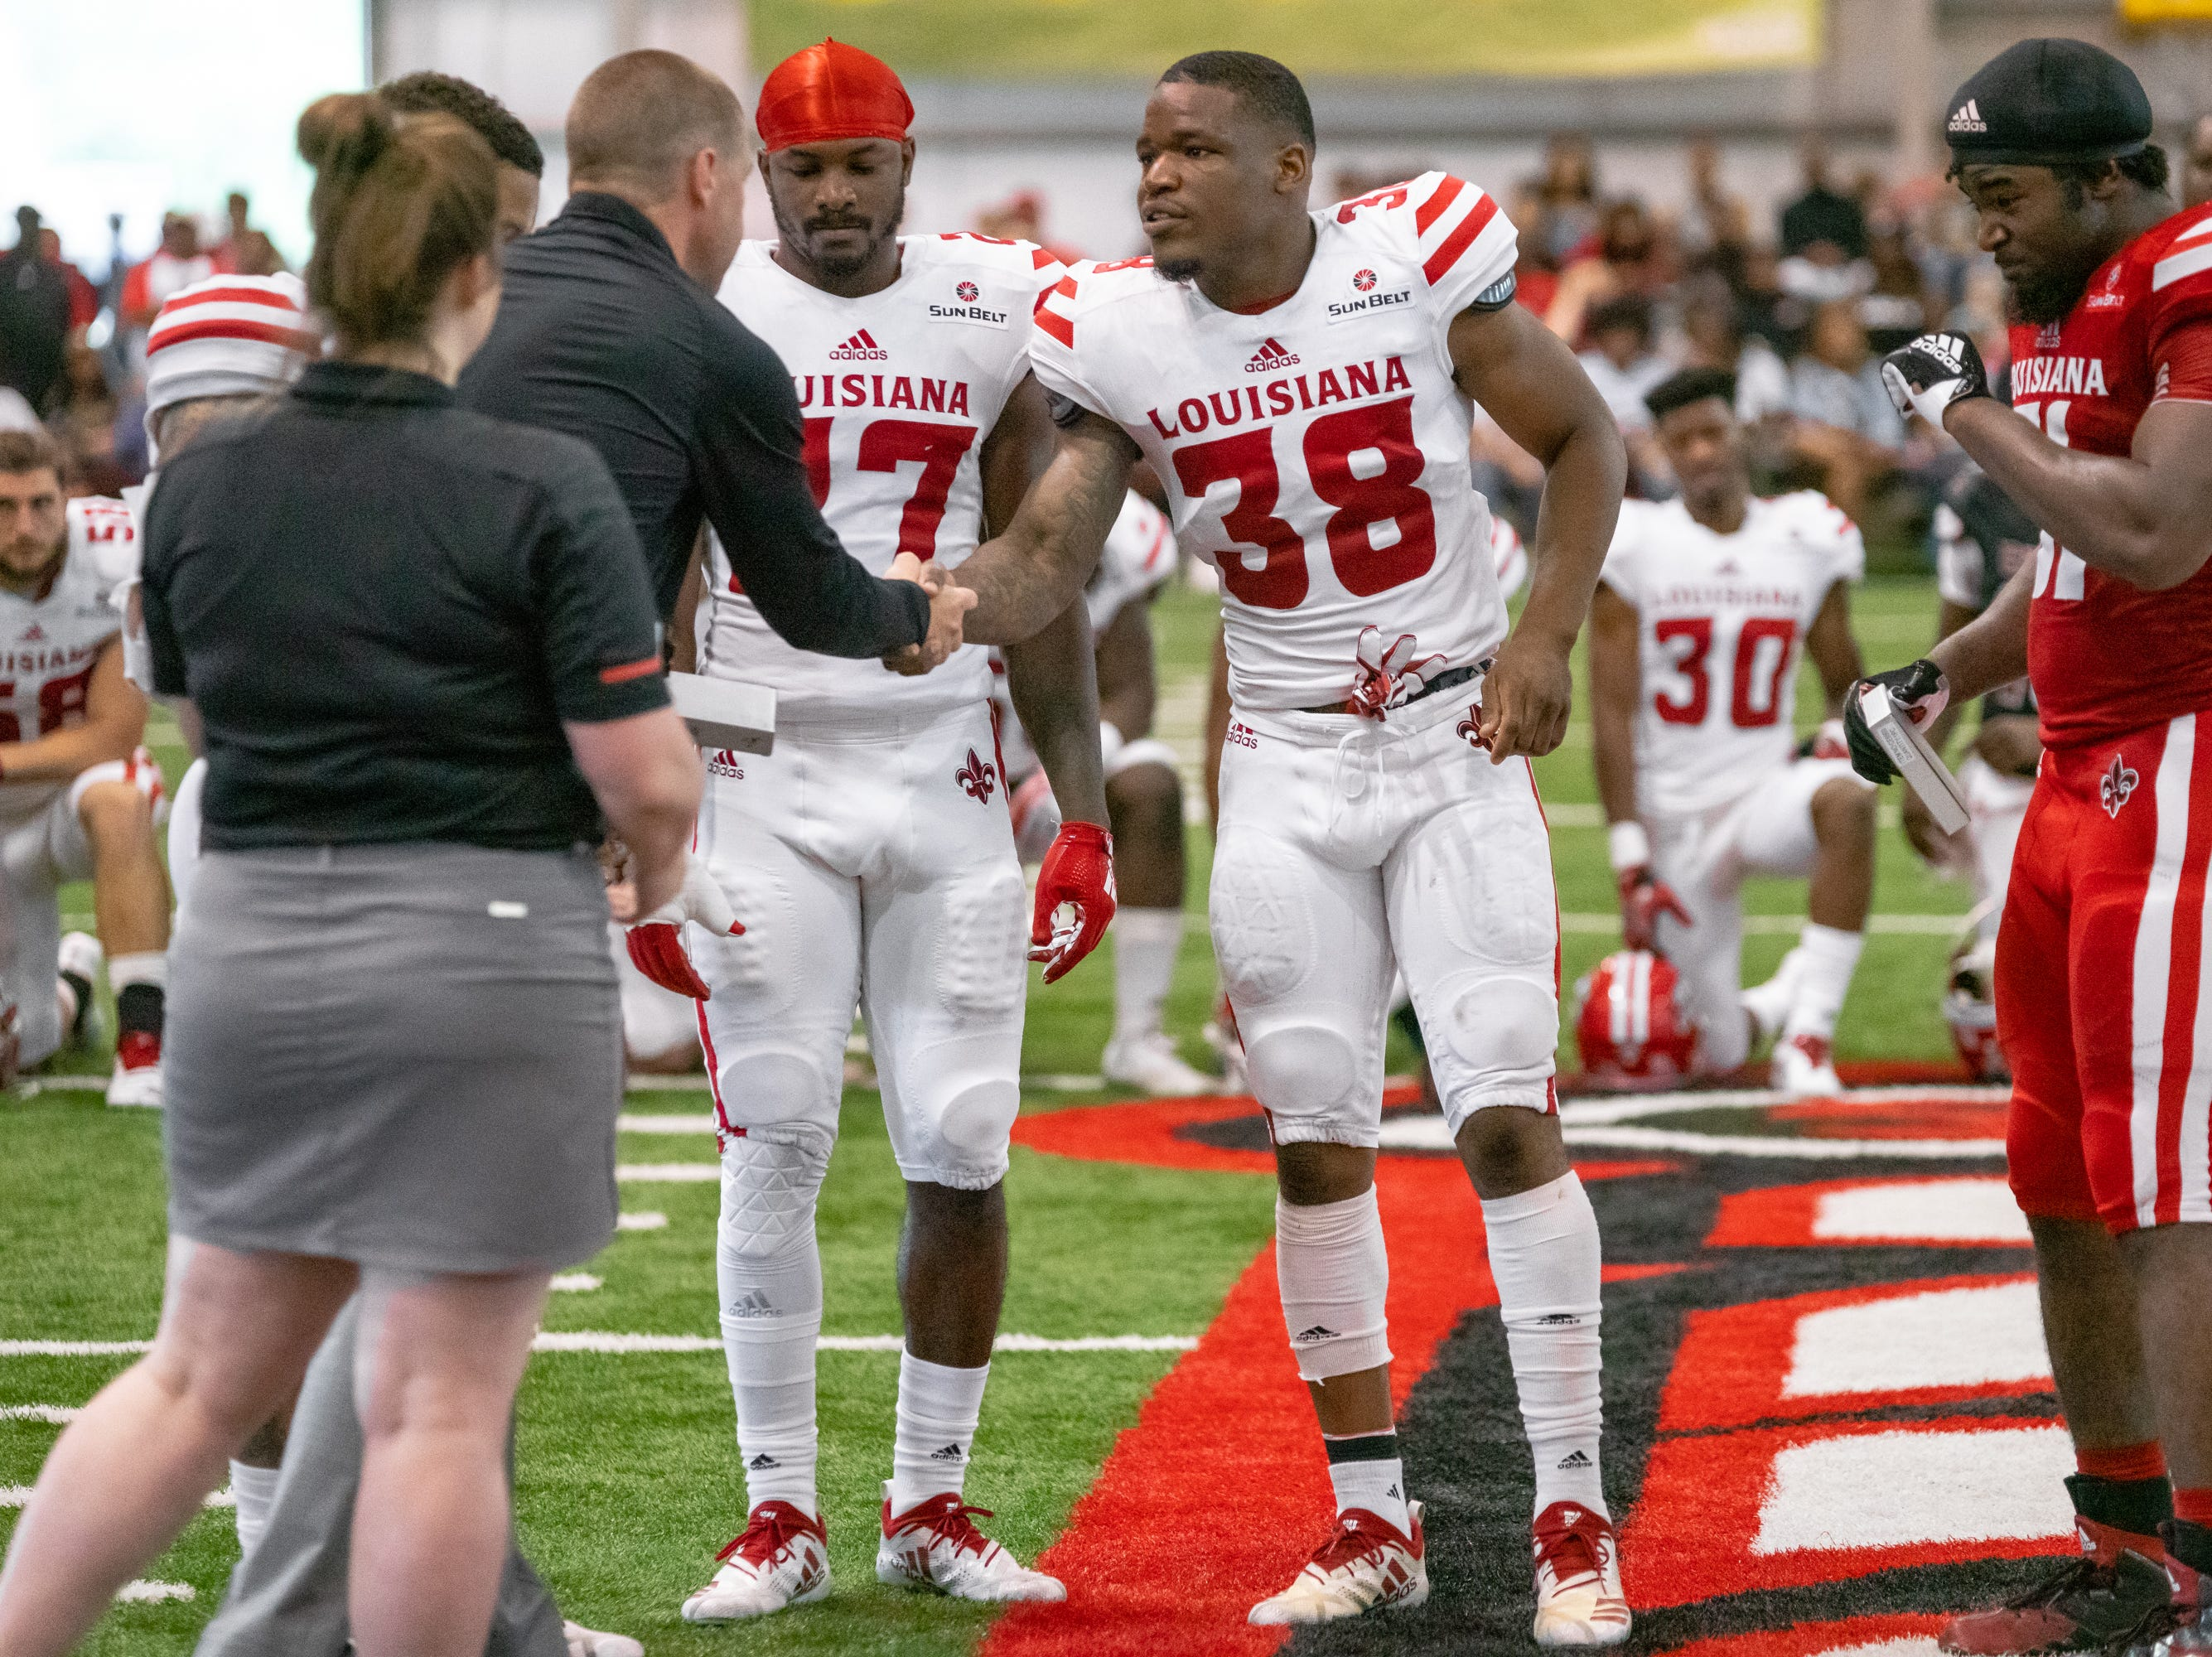 UL's Terik Miller shakes hands with head coach Billy Napier during halftime as the Ragin' Cajuns football team plays their annual Spring football game against one another in the Leon Moncla trainig facility on April 13, 2019.